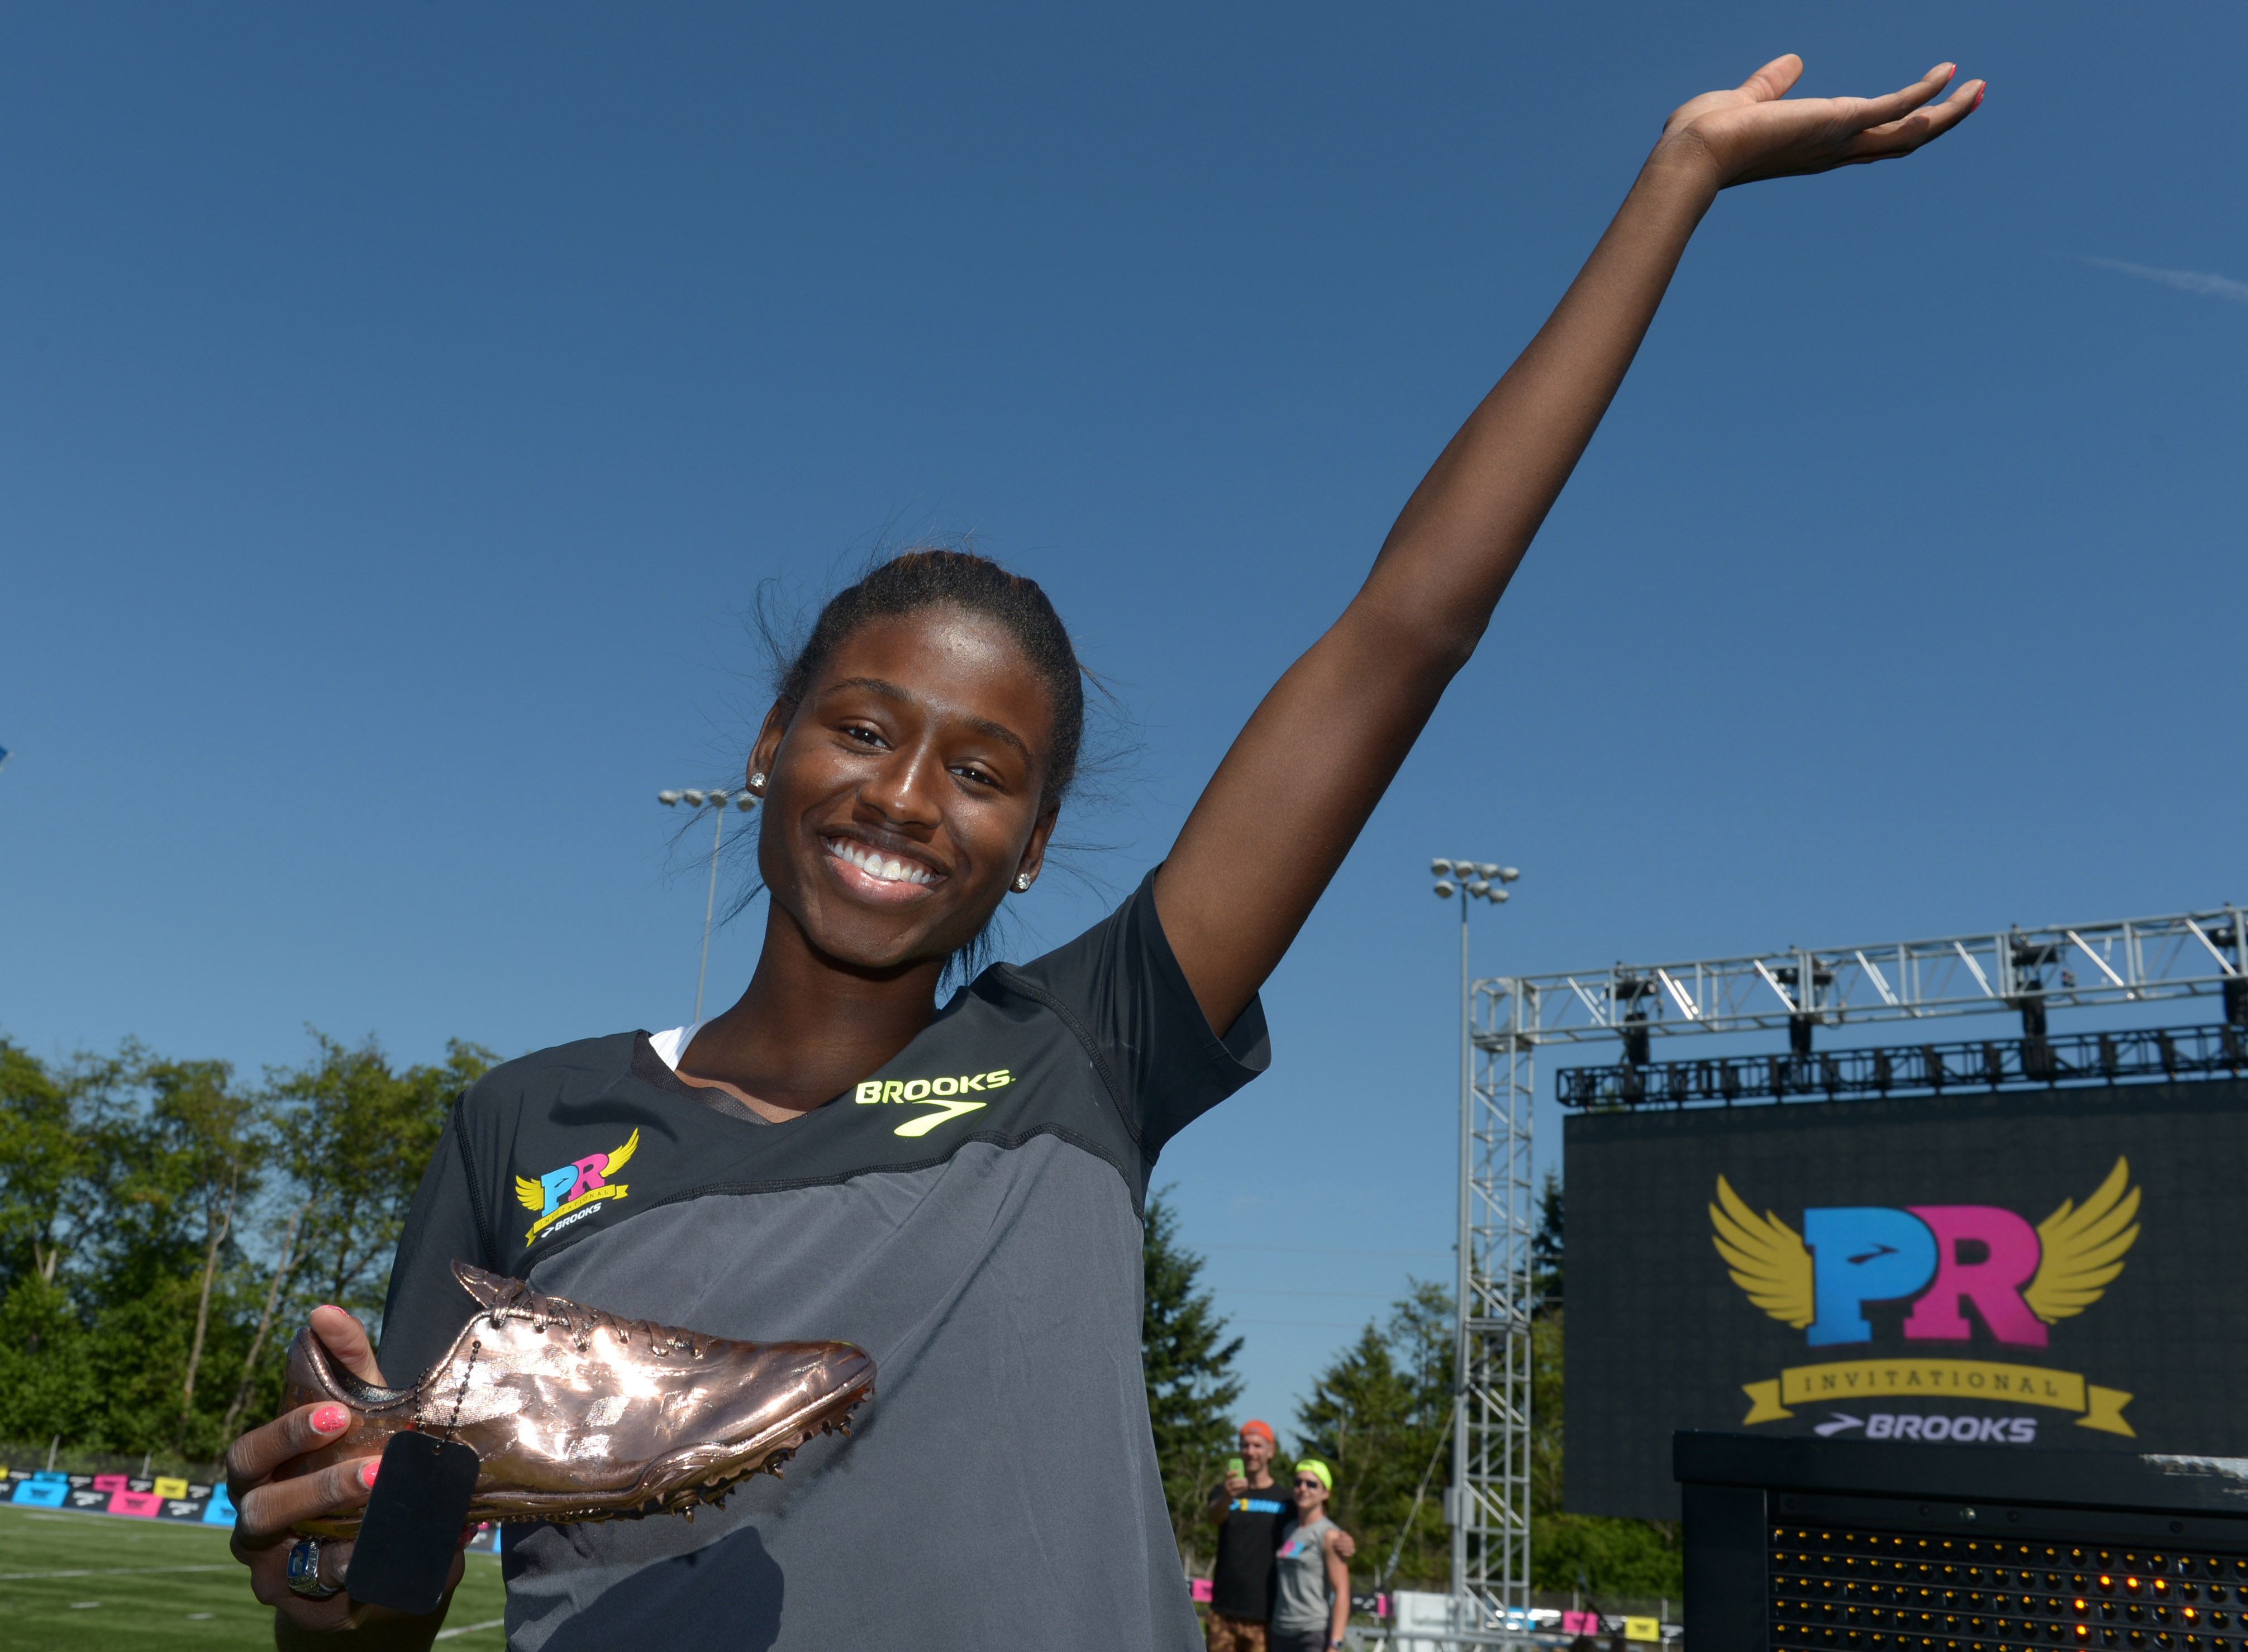 Candace Hill poses after winning the girls 100m in a national high school record 10.98 in the 2015 Brooks PR Invitational at Shoreline Stadium. (Kirby Lee, USA TODAY Sports)